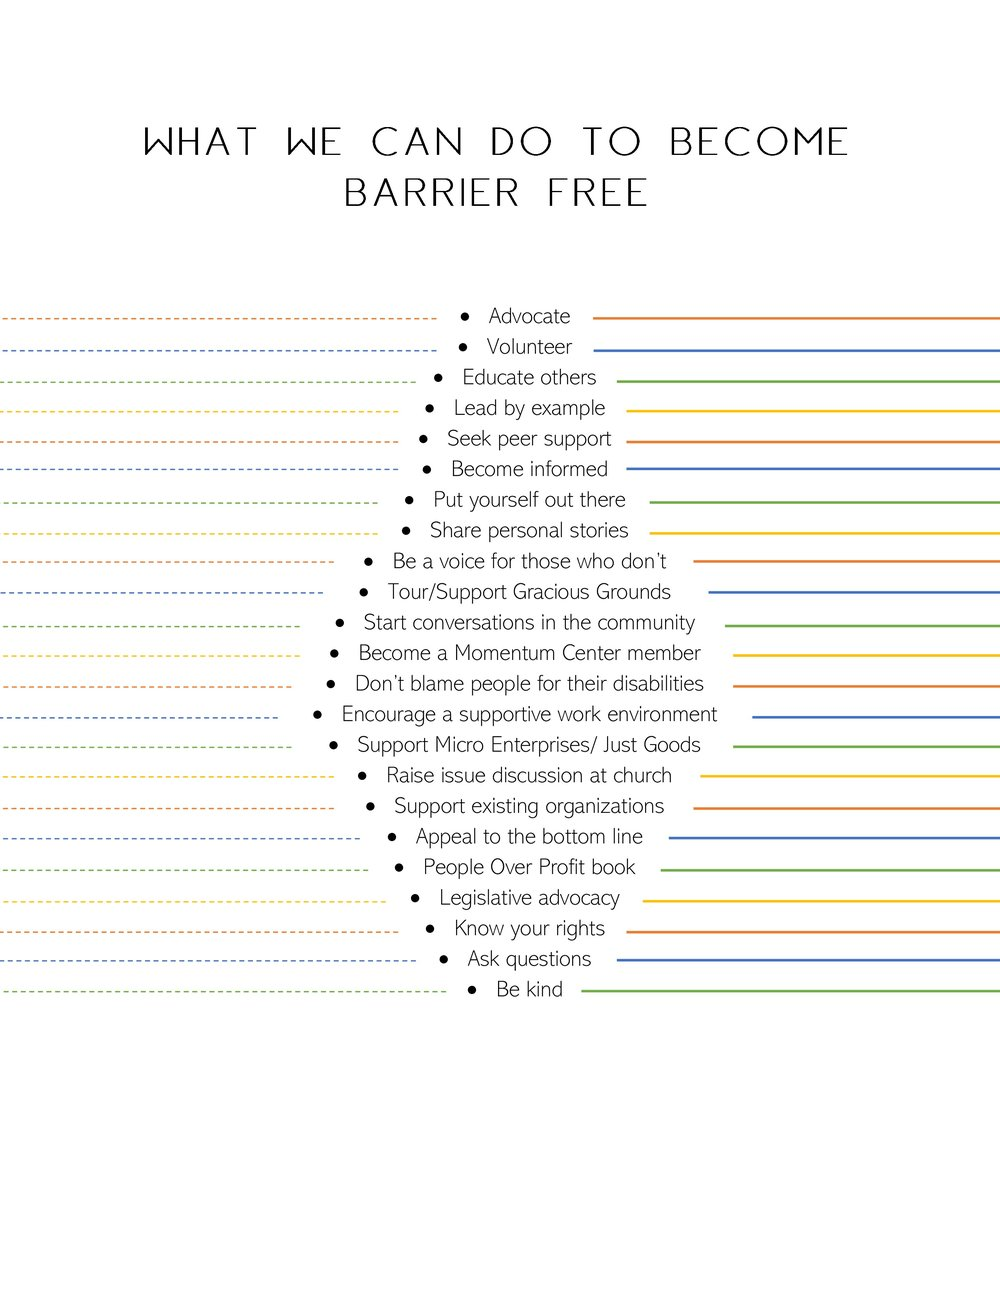 What We Can Do to Become Barrier Free (1)-page-0.jpg